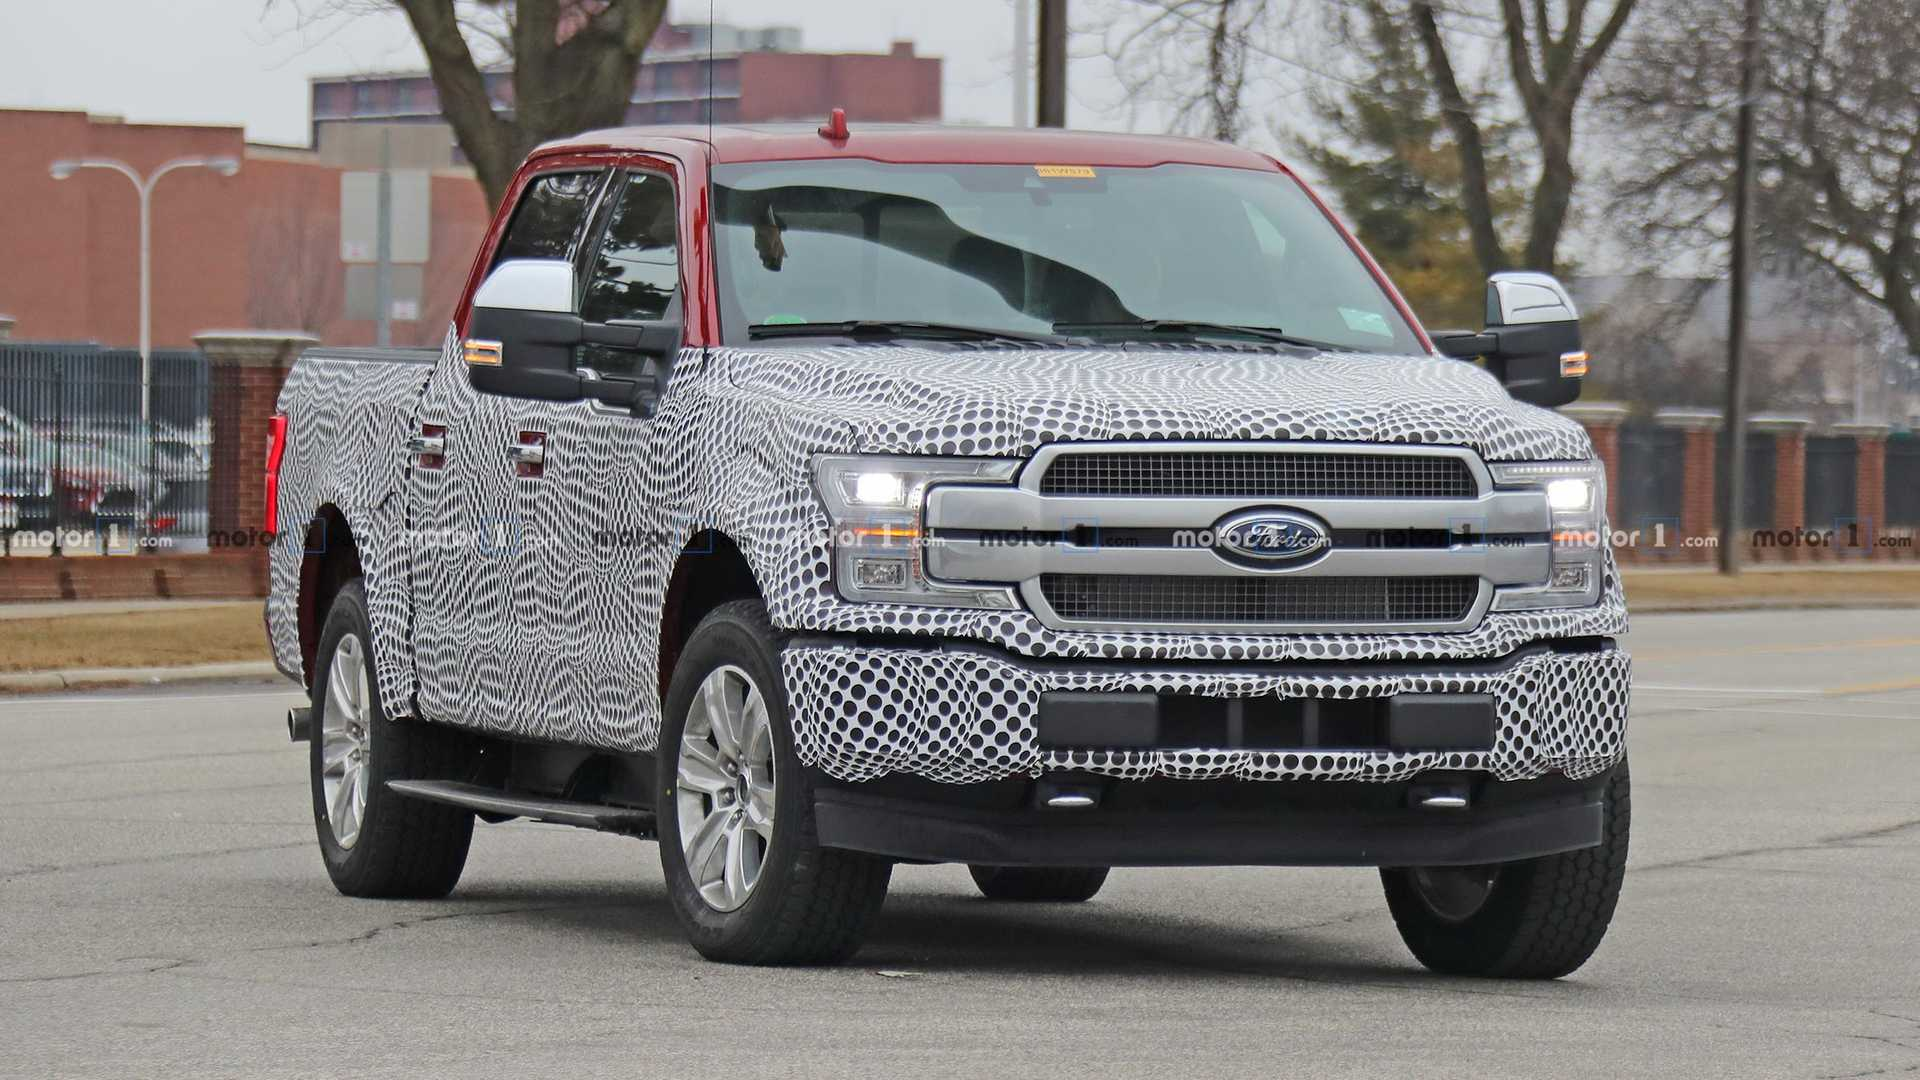 Ford has released a brief promo video showing a battery-powered version of its latest F-150 truck. It will be the marque's first car to enter production in Dearborn, Michigan.